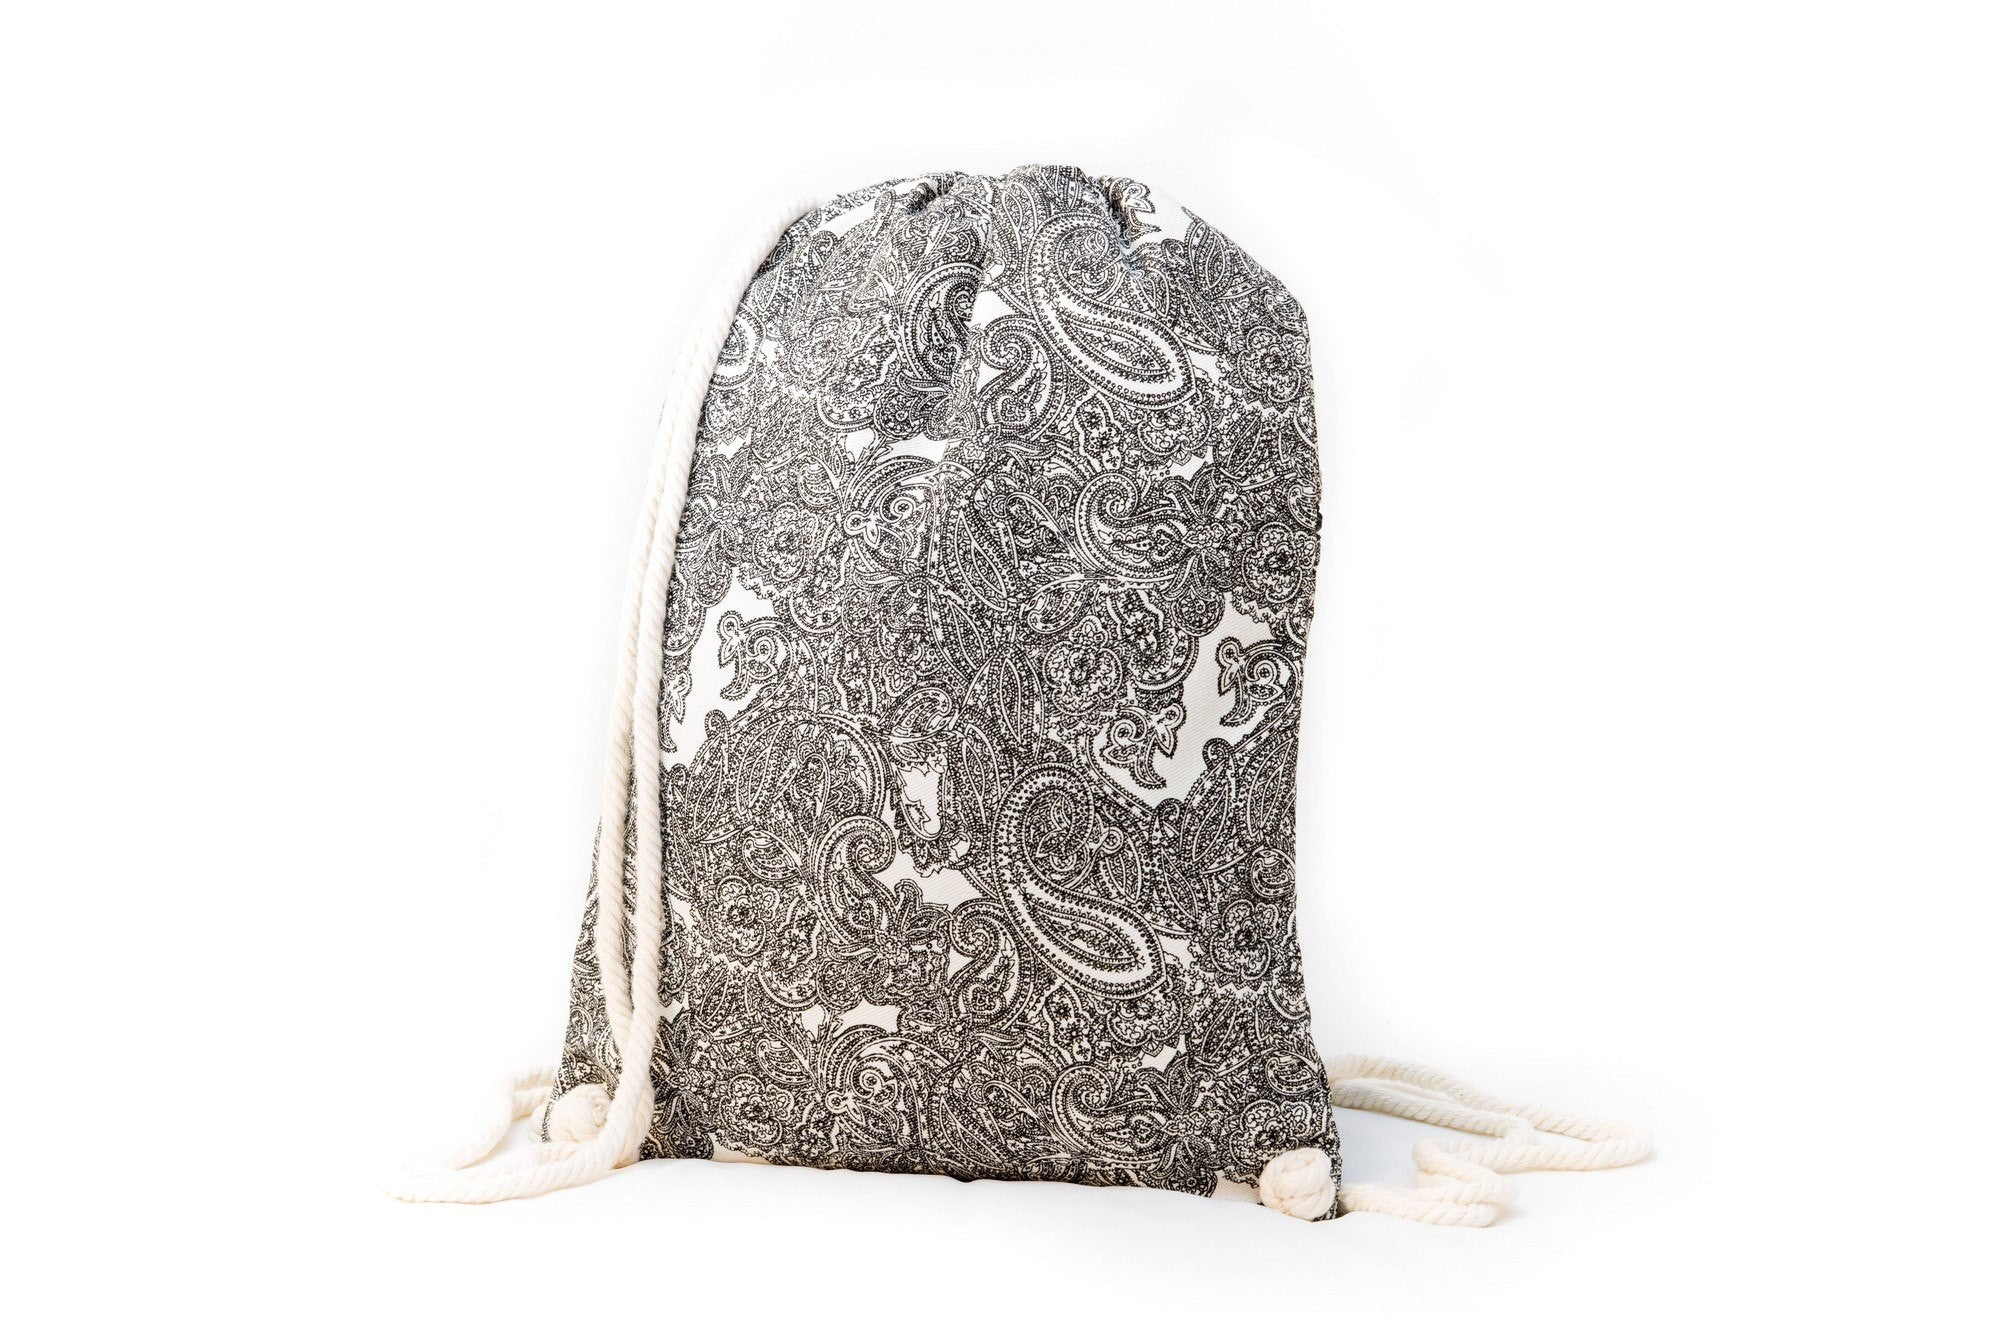 Drawstring Backpack - Drawstring Backpack - Canvas Cinch Daypack Sackpack By Lemur Bags (Paisley)